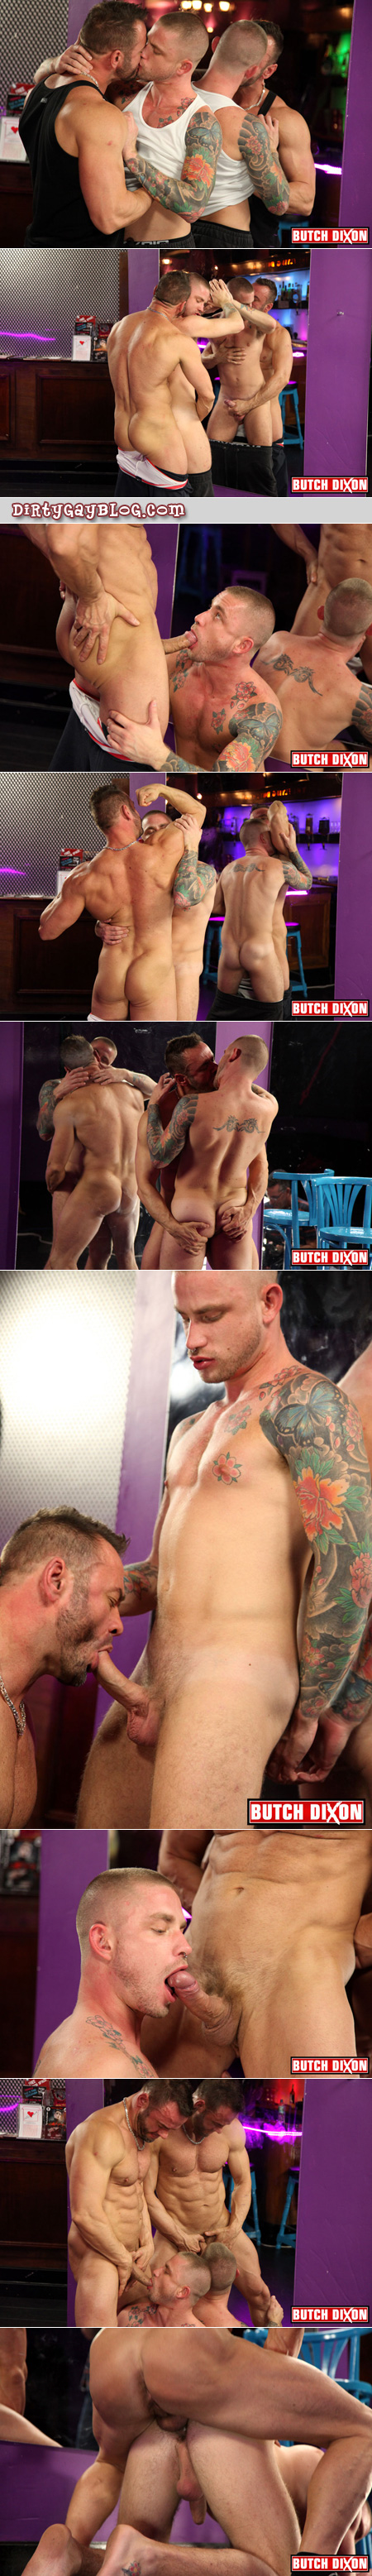 Beefy, burly barman's uncut cock is serviced by a horny, tattooed, blonde guy who gives up his tight asshole.